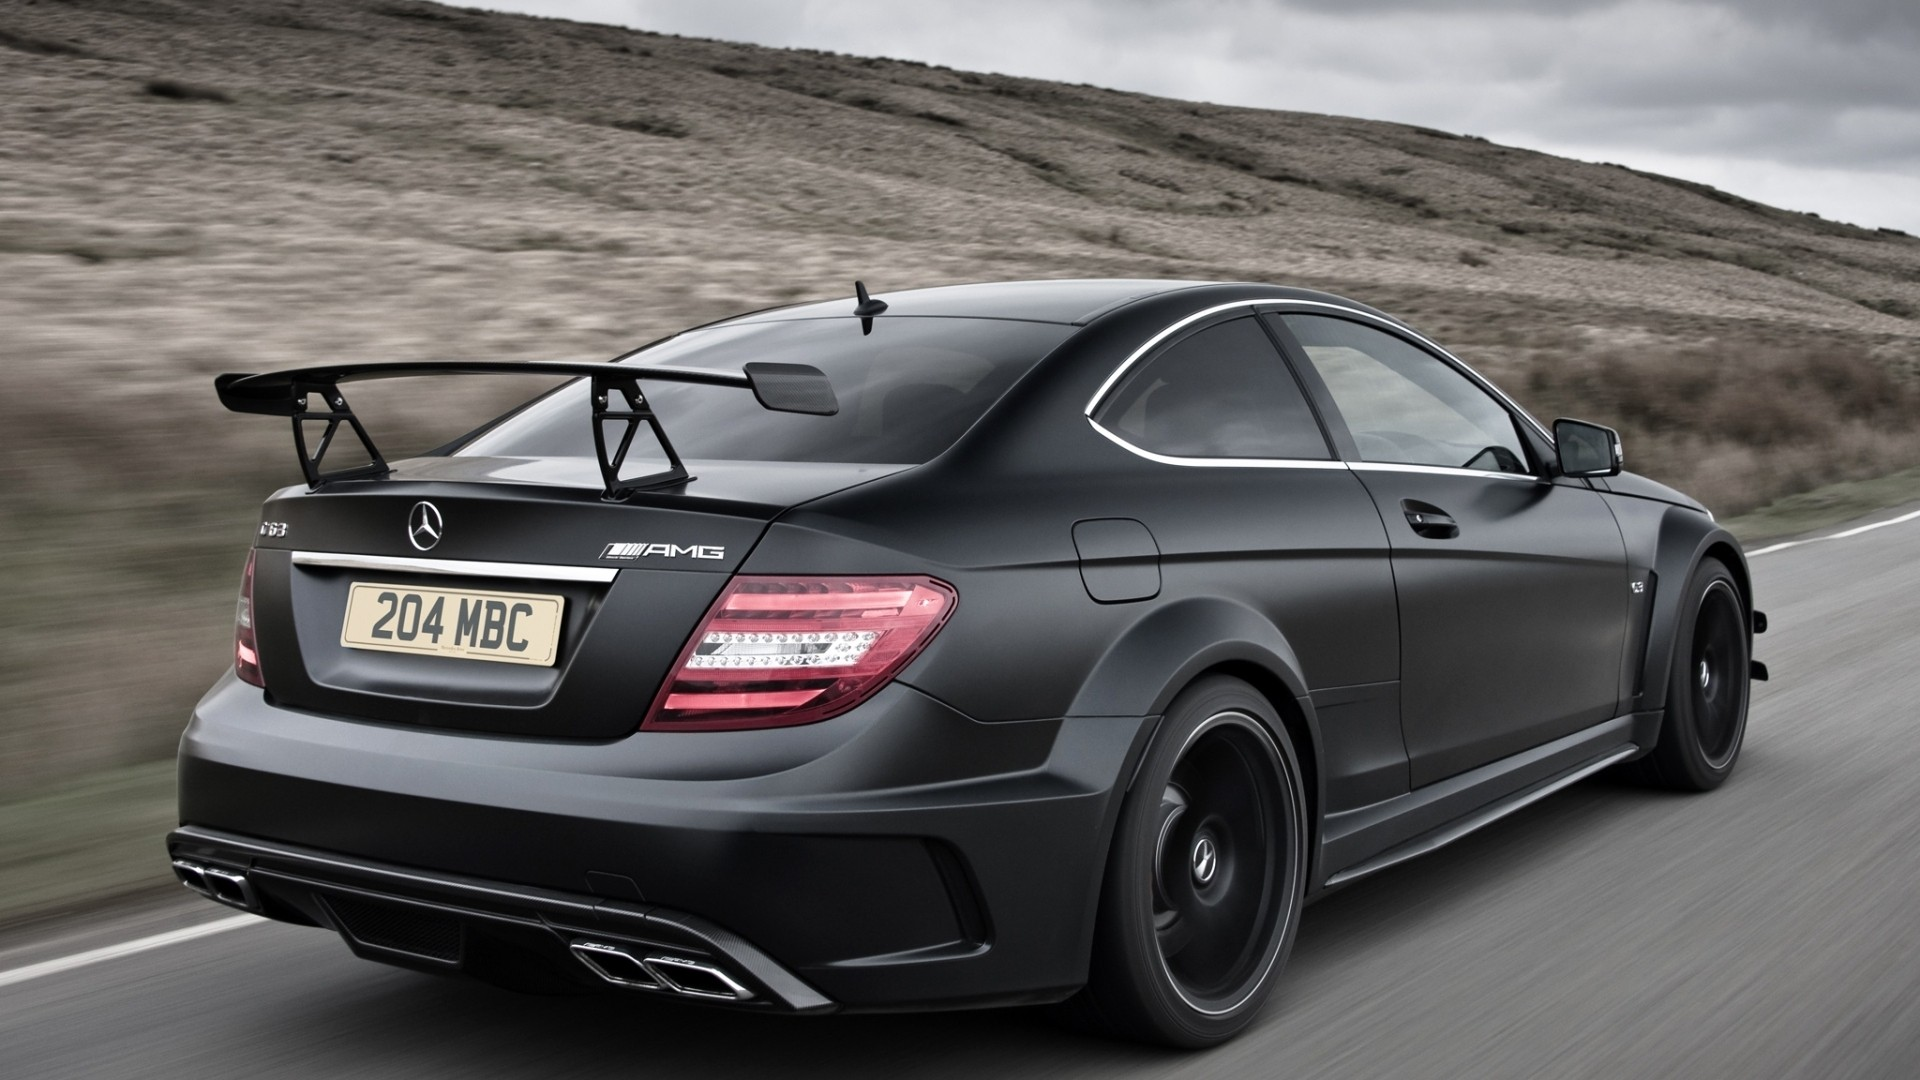 Mercedes Benz C63 AMG Black Series - photo